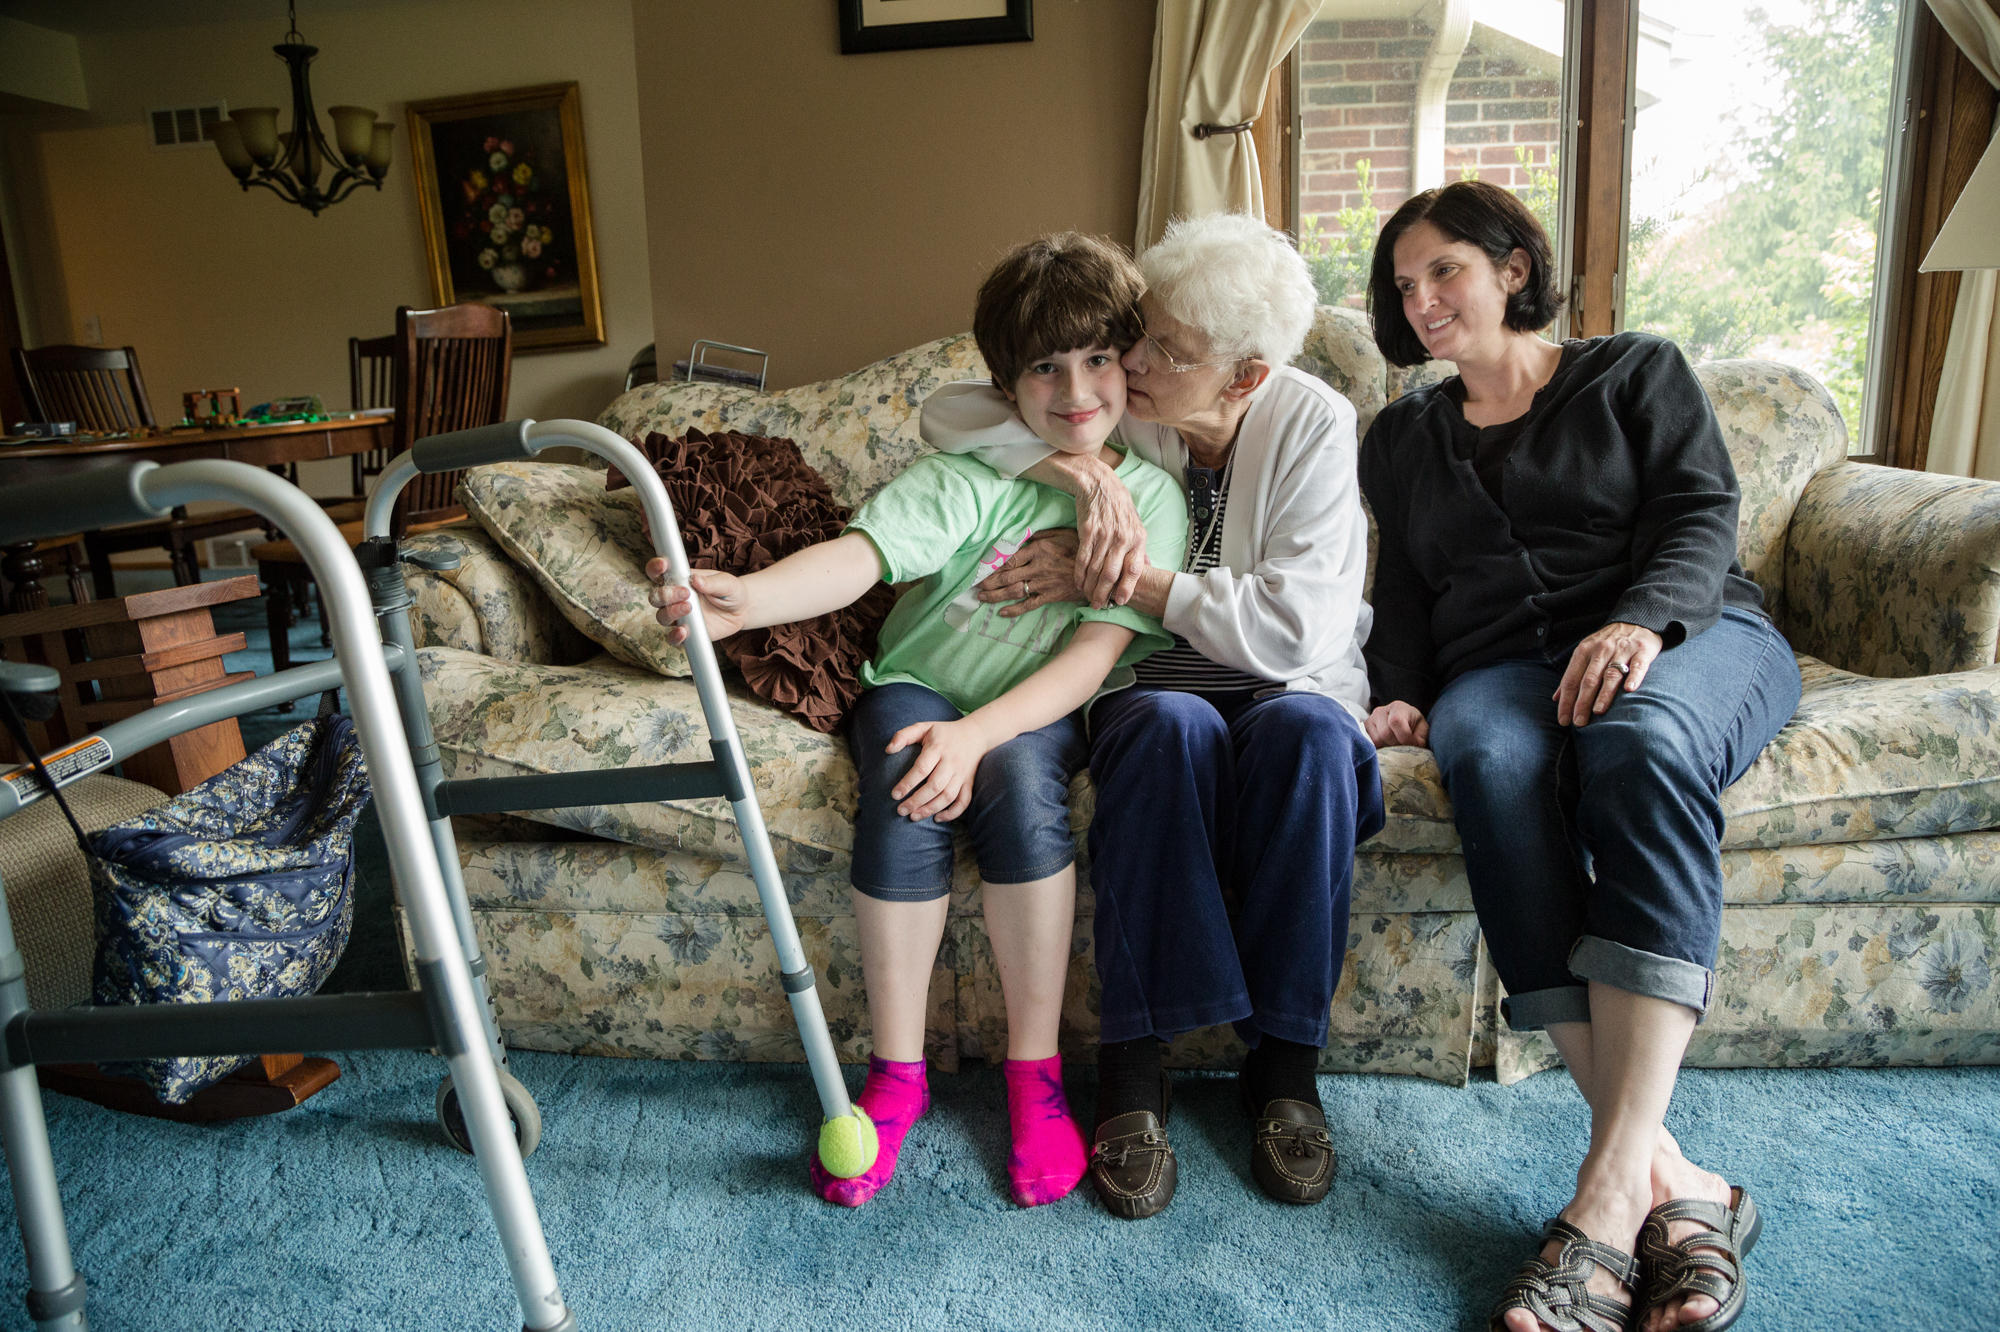 Wisconsin Family Stays Together With Help From Medicaid